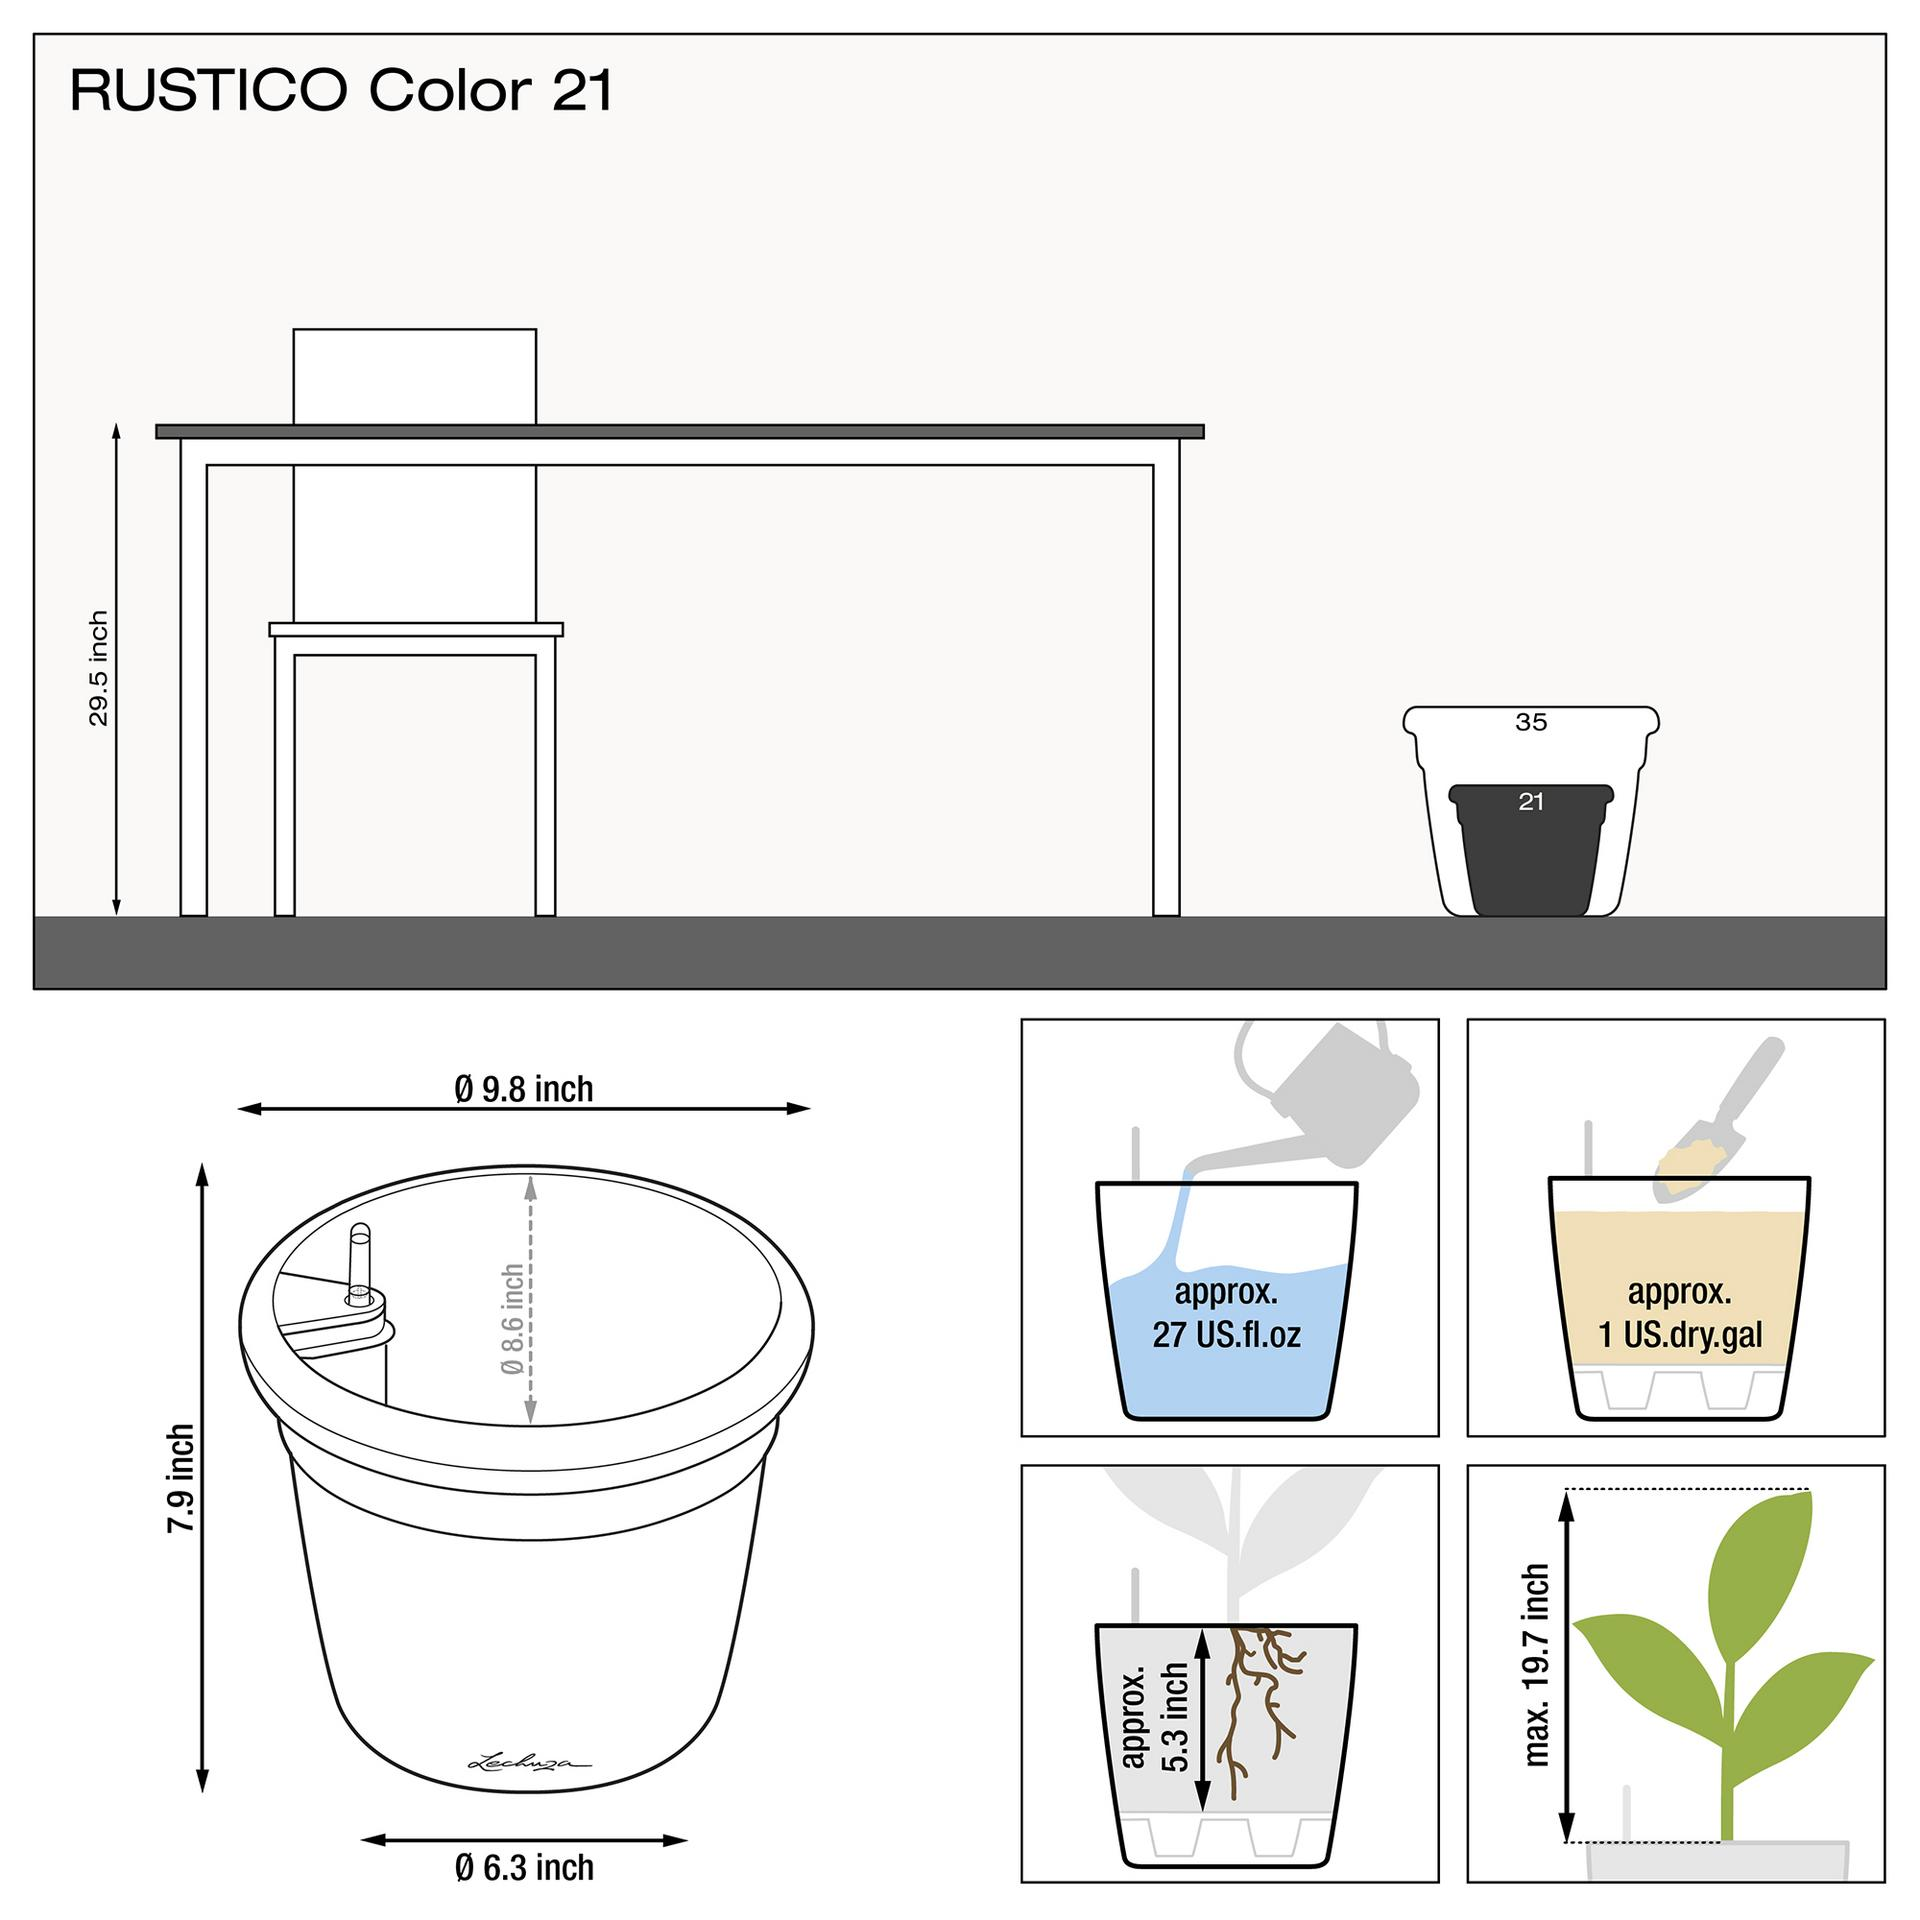 le_rustico-color21_product_addi_nz_us